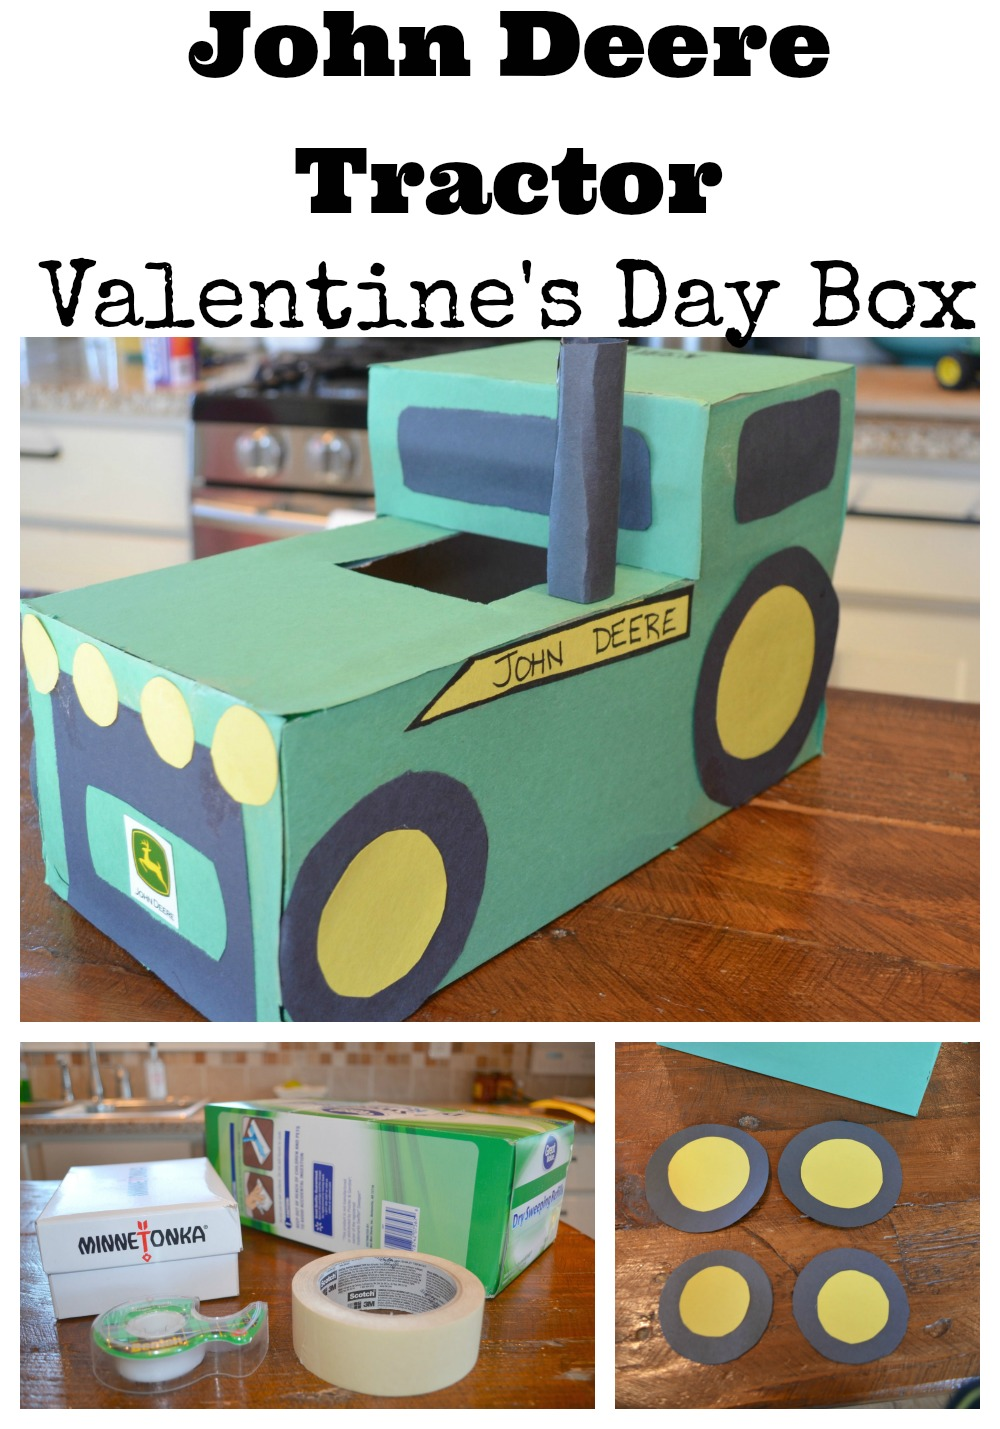 Easy John Deer Tractor Valentine's Day Box